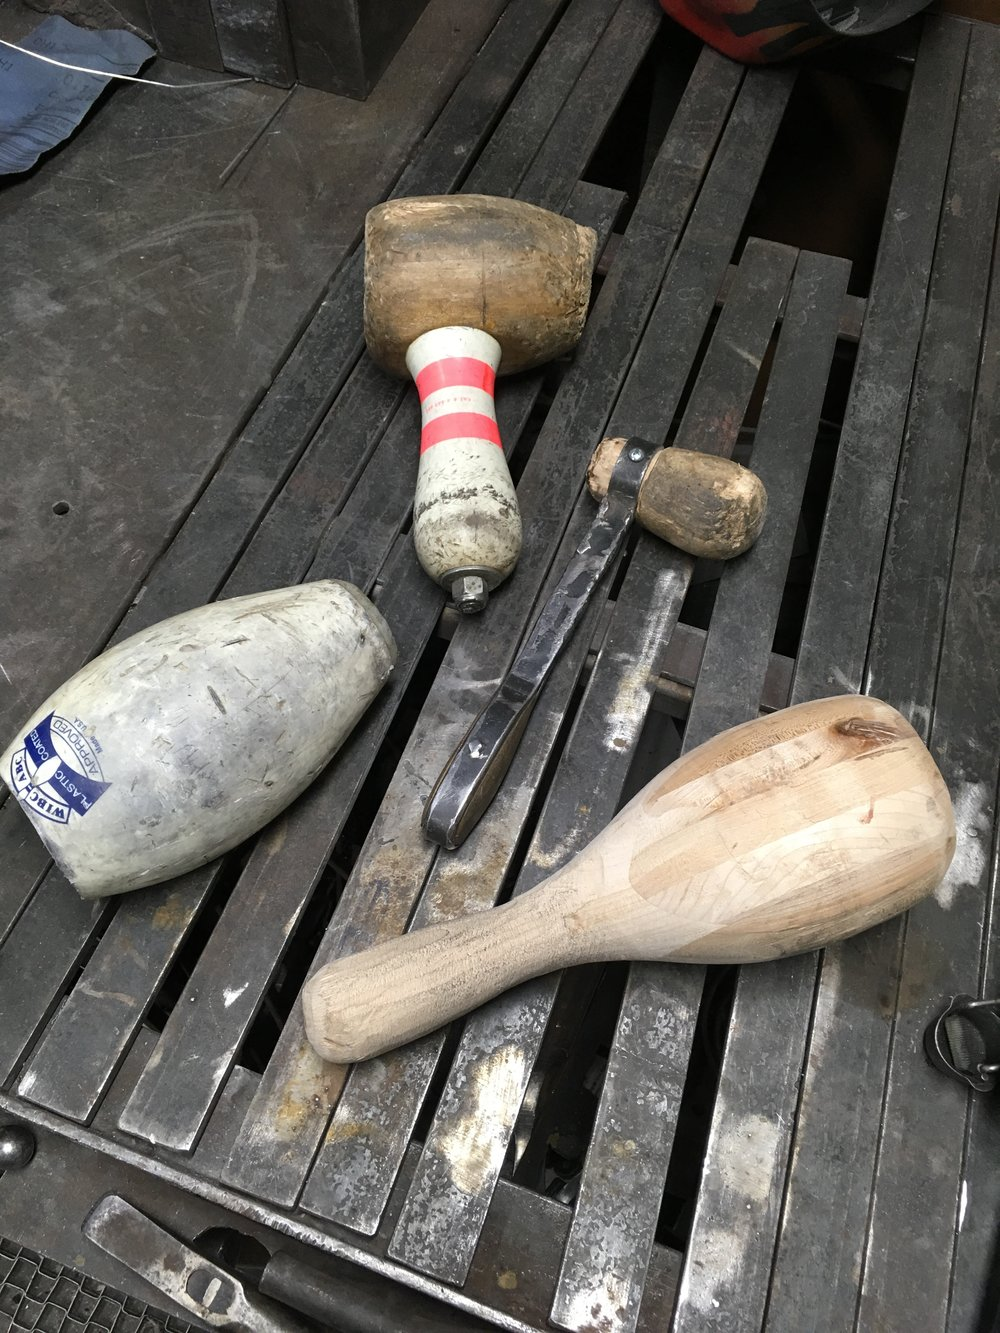 Some of the low-tech homebrew tools used in the aluminum pounding. Bowling pins are pretty easy to find and their hard oak composition makes them great tor pounding.